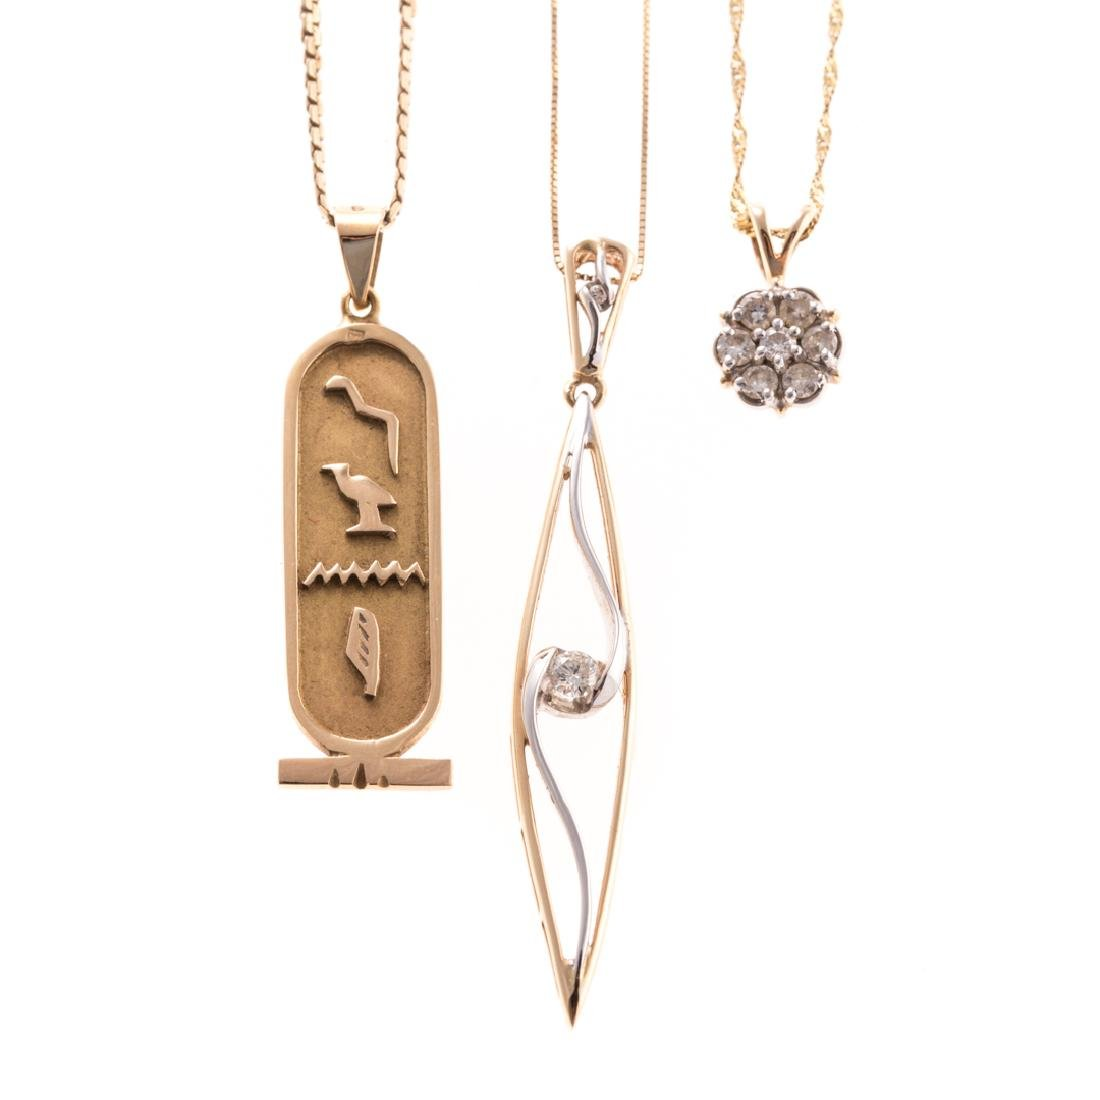 A Trio of Lady's Necklaces in 14K & 10K Gold